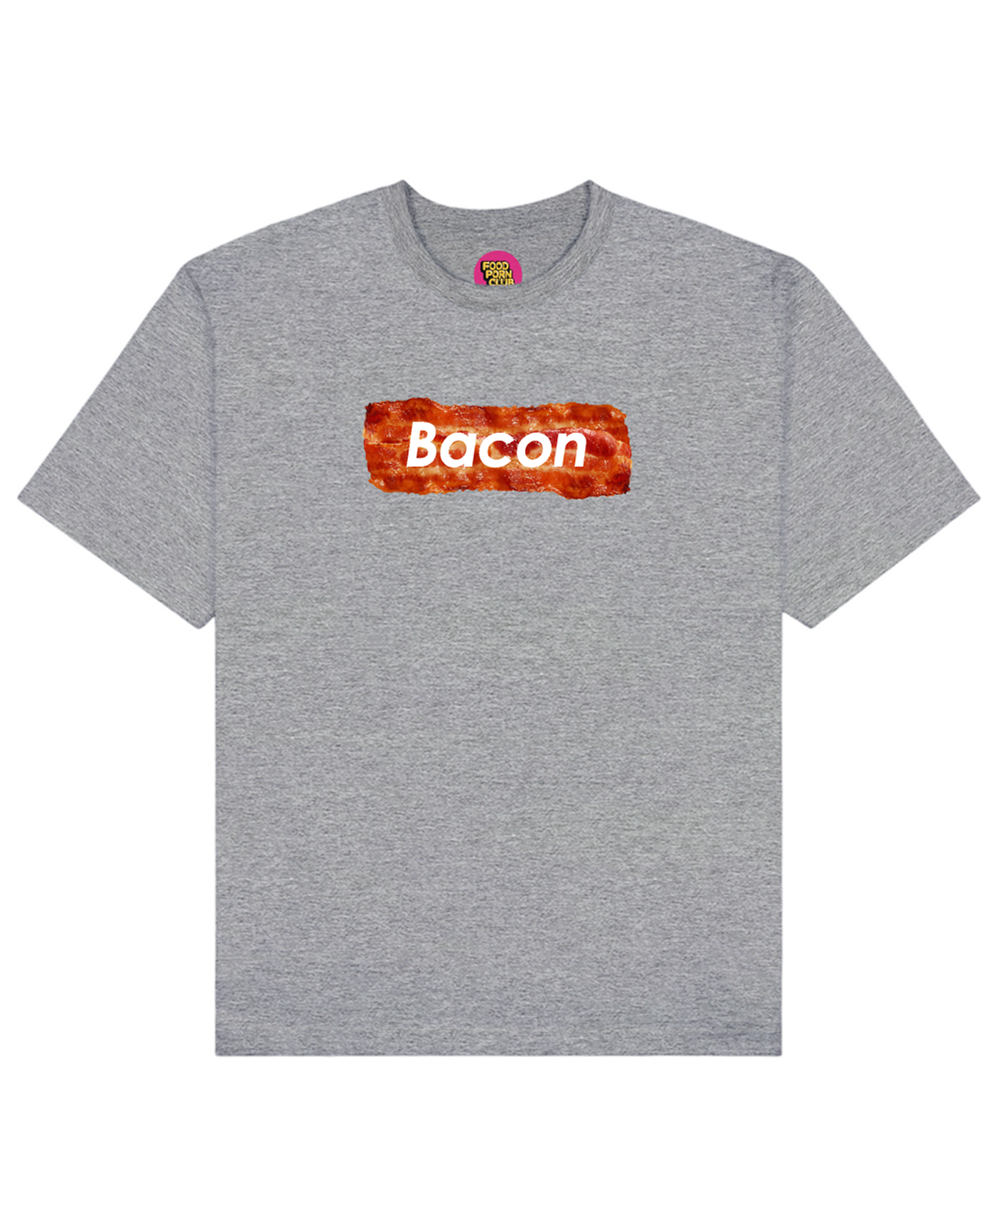 Bacon Print T-Shirt in Heather Gray - T-Shirts - FOOD PORN CLUB - BRANMA